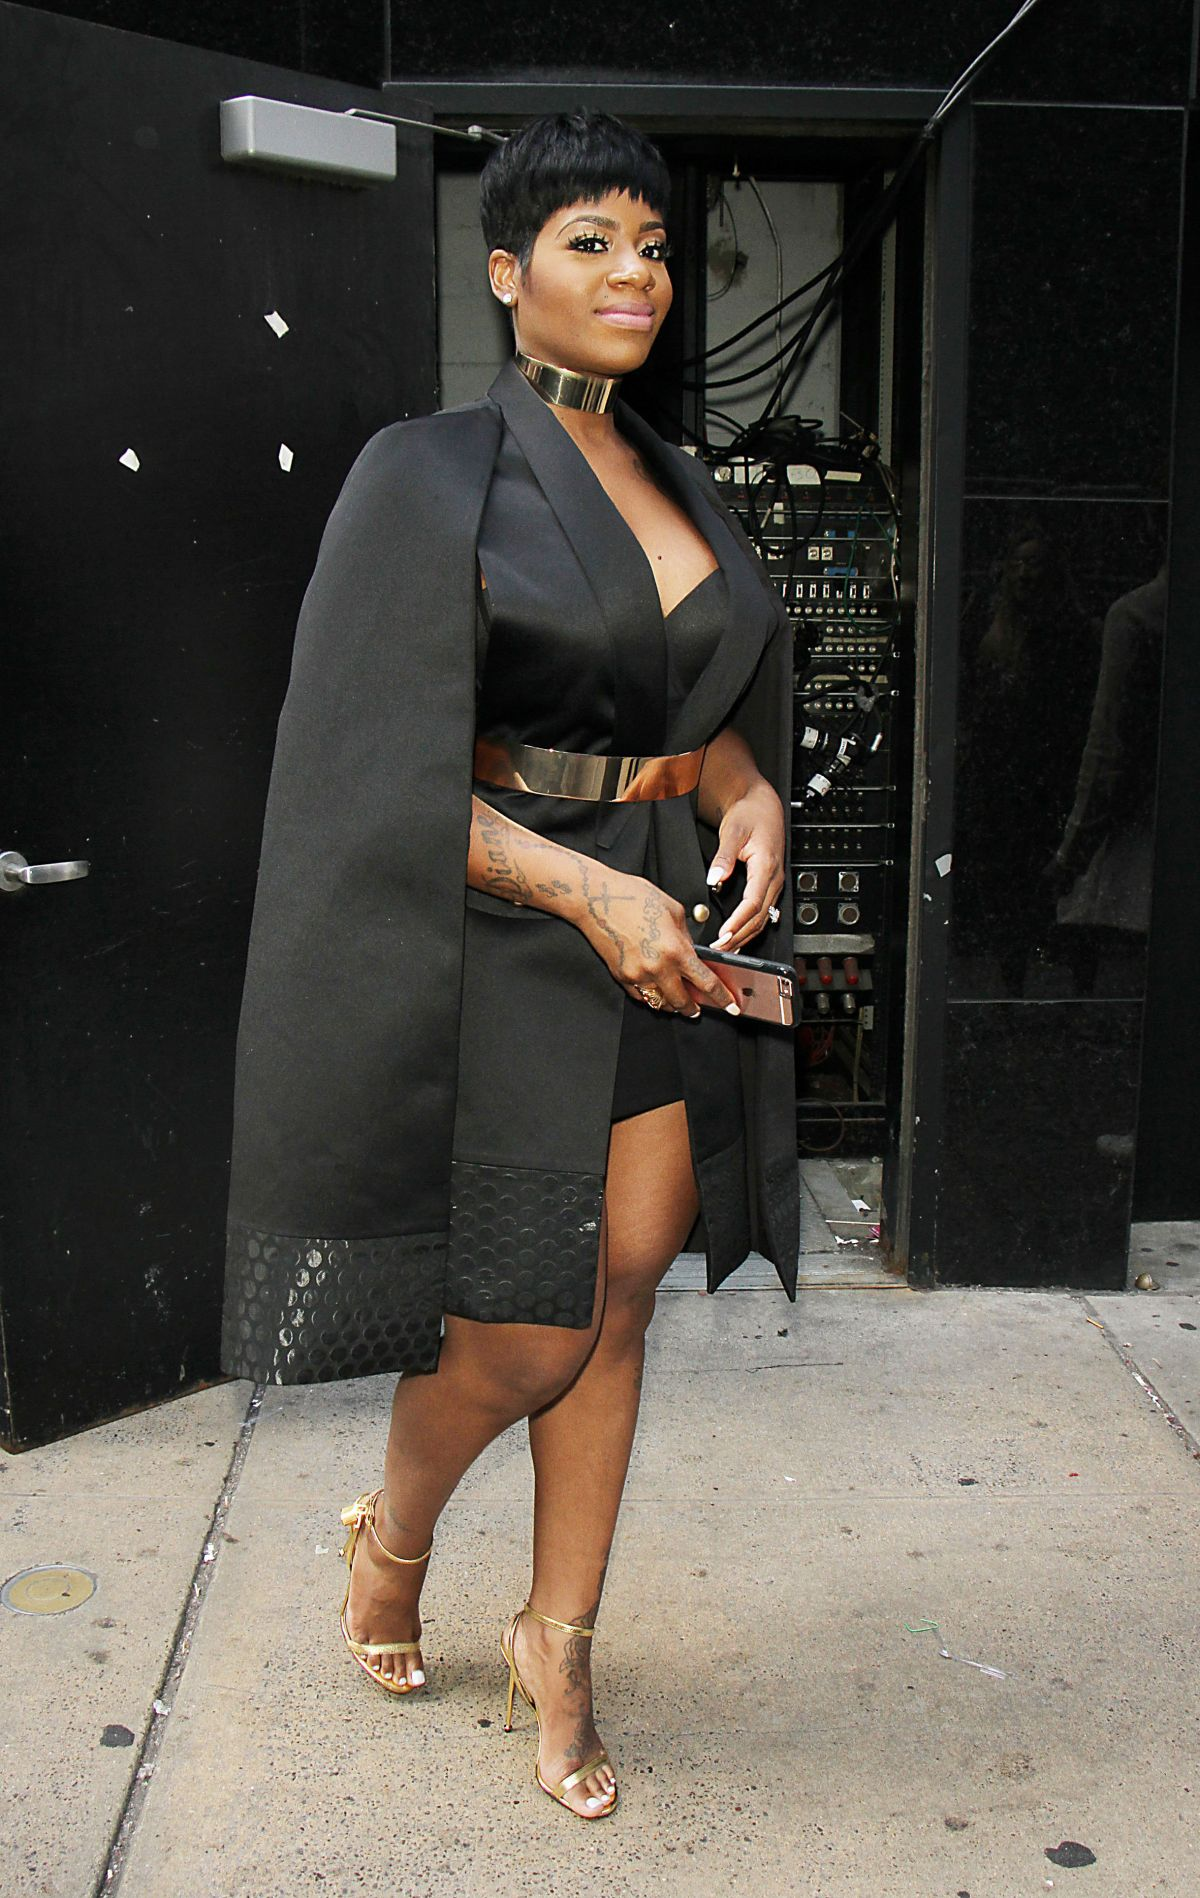 Nude Pics Of Fantasia Barrino 16